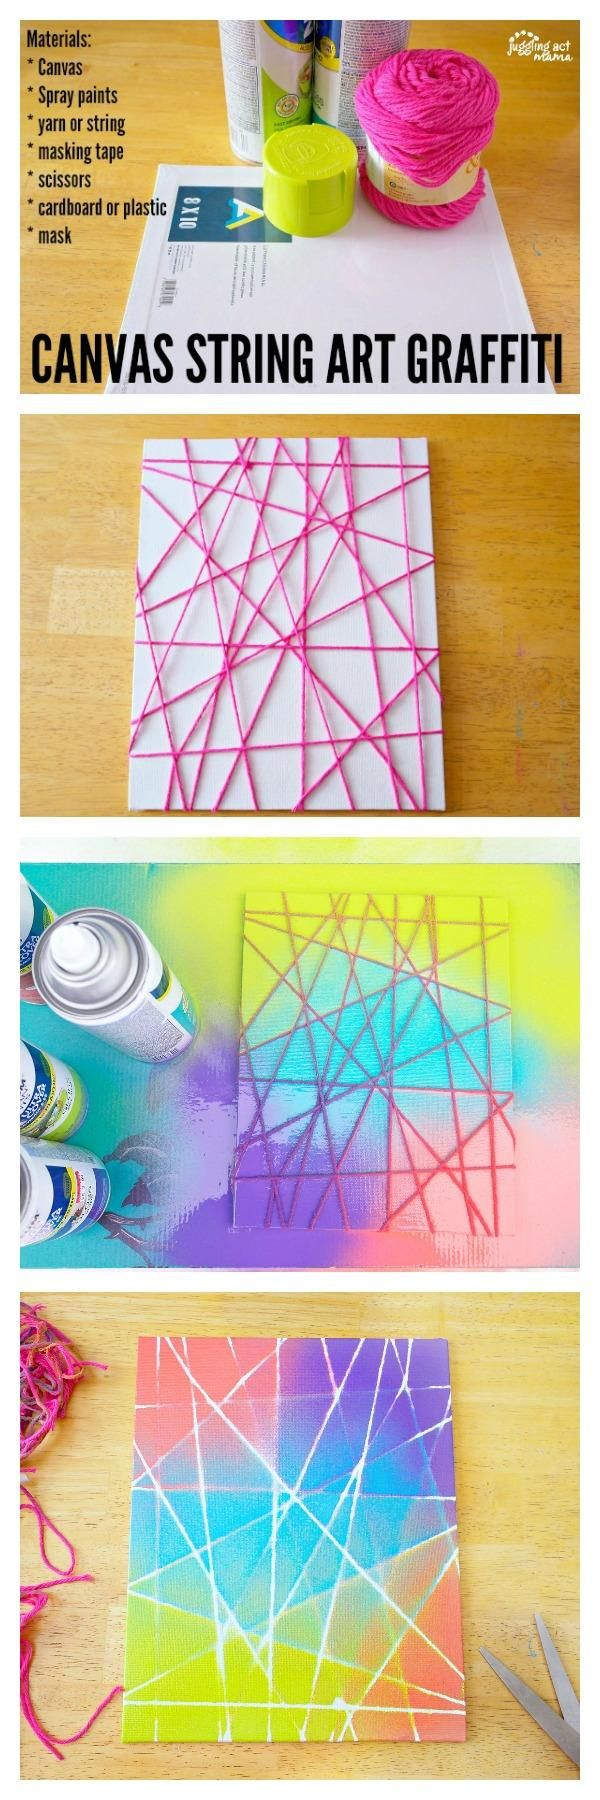 This Canvas String Art Graffiti Project Is Fun For Kids And Adults Alike While A Spray Paint You Can Use Alternative Paints Or Dyes